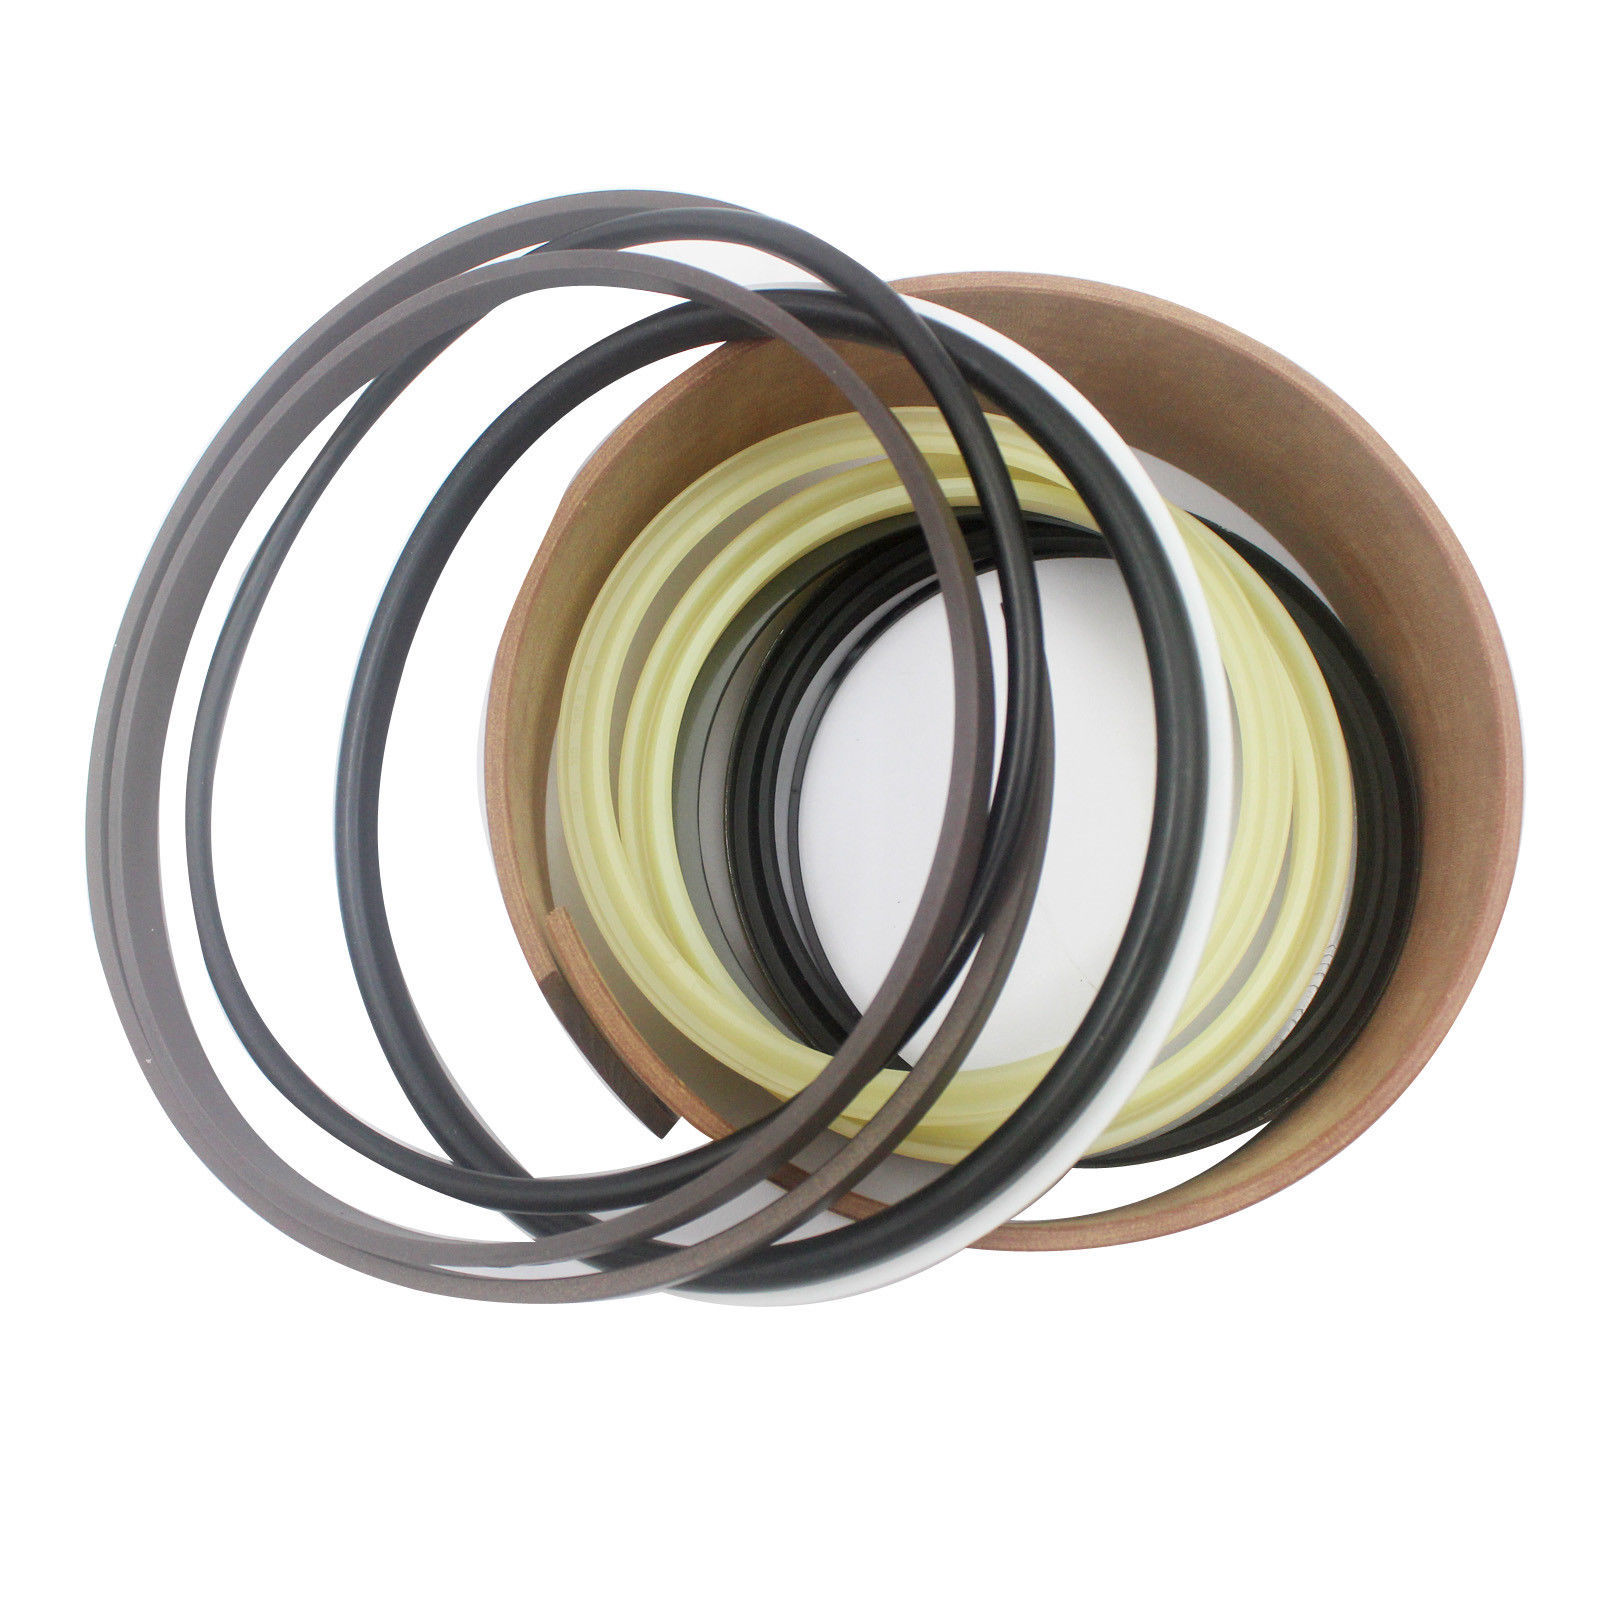 PC650-5 Boom Hydraulic Cylinder Seal Kit For and 13 similar items